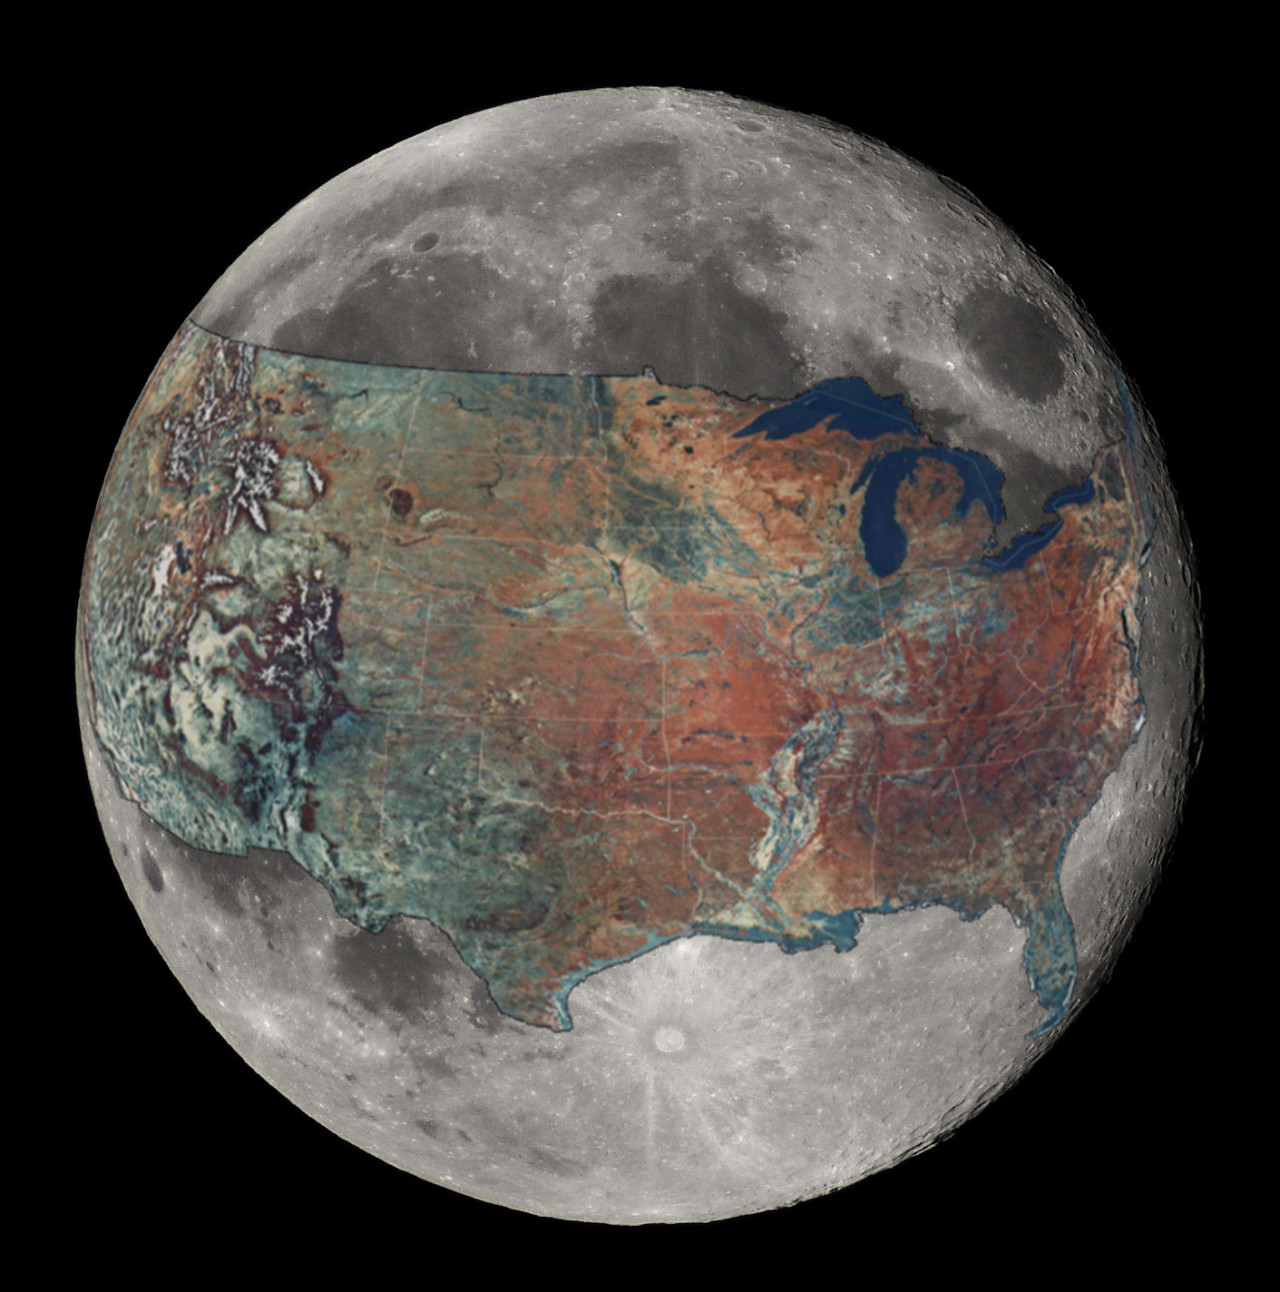 The continental U.S. overlaid on the Moon, for your daily dose of perspective. Whoa. Compare the size of the craters to our biggest cities! To take your dose of perspective to the next level, check out this video from Veritasium on just how far away the Moon is from the Earth (Hint: Much farther than most people think):  (via io9)